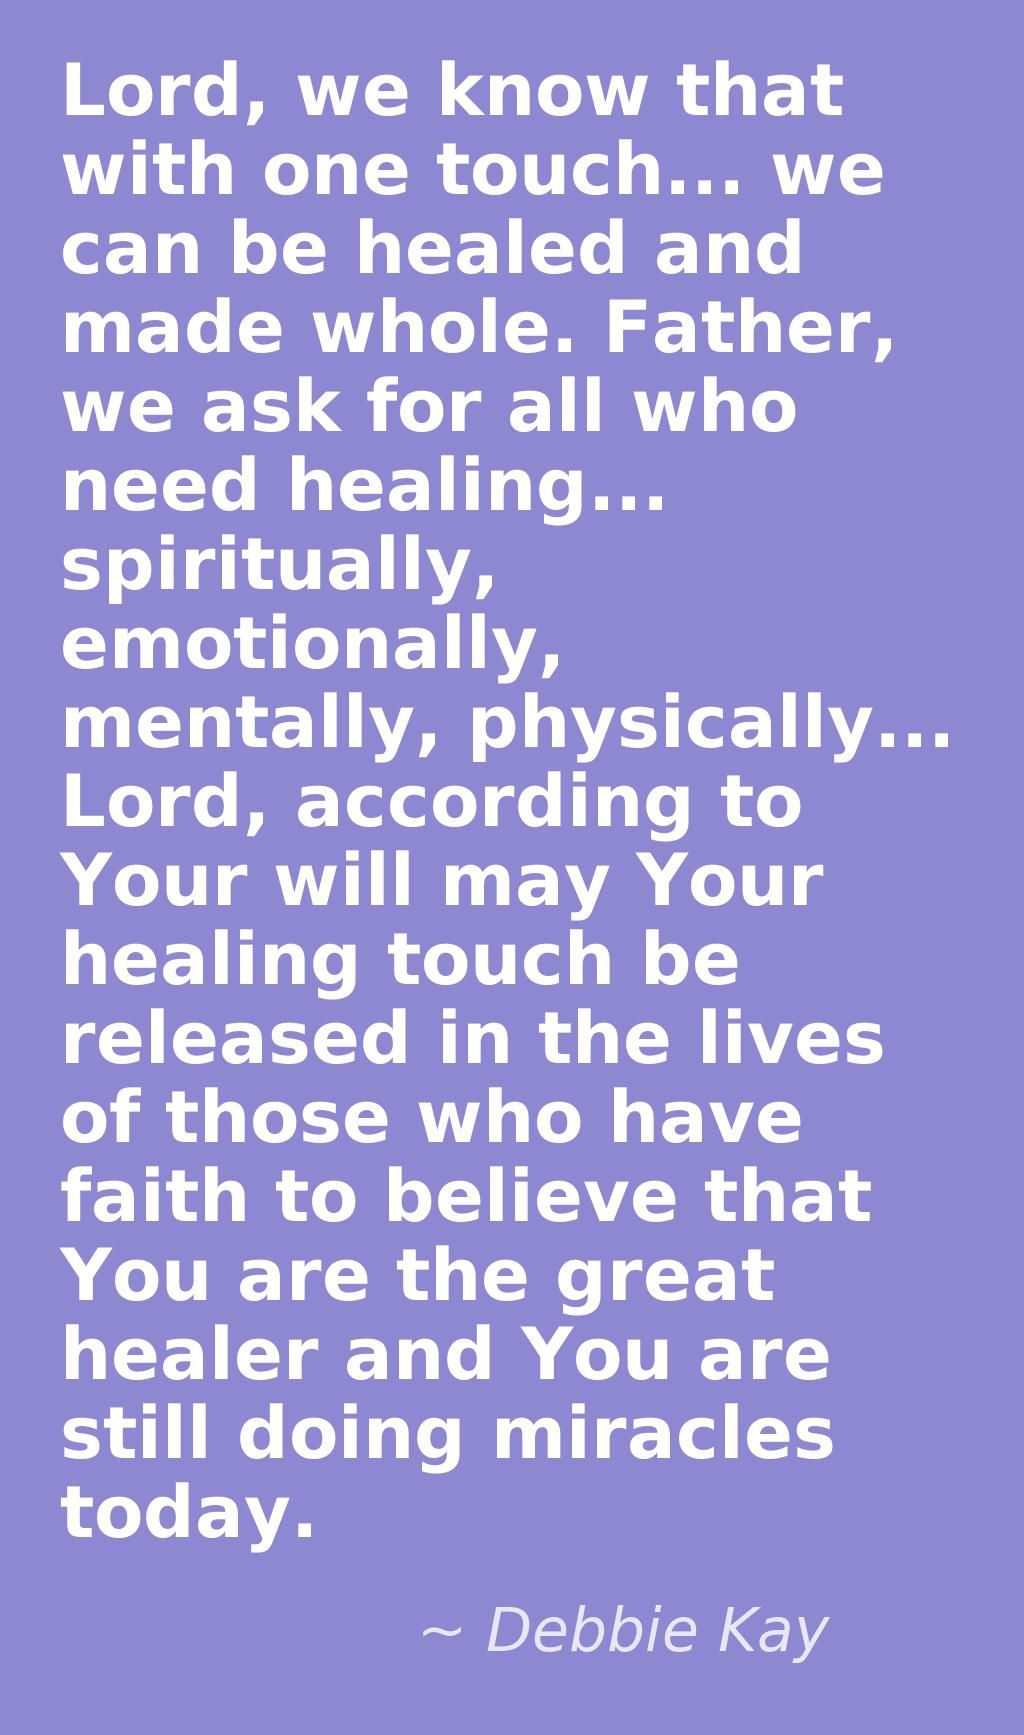 Thank you for your healing, Lord. Debbie Kay prayer